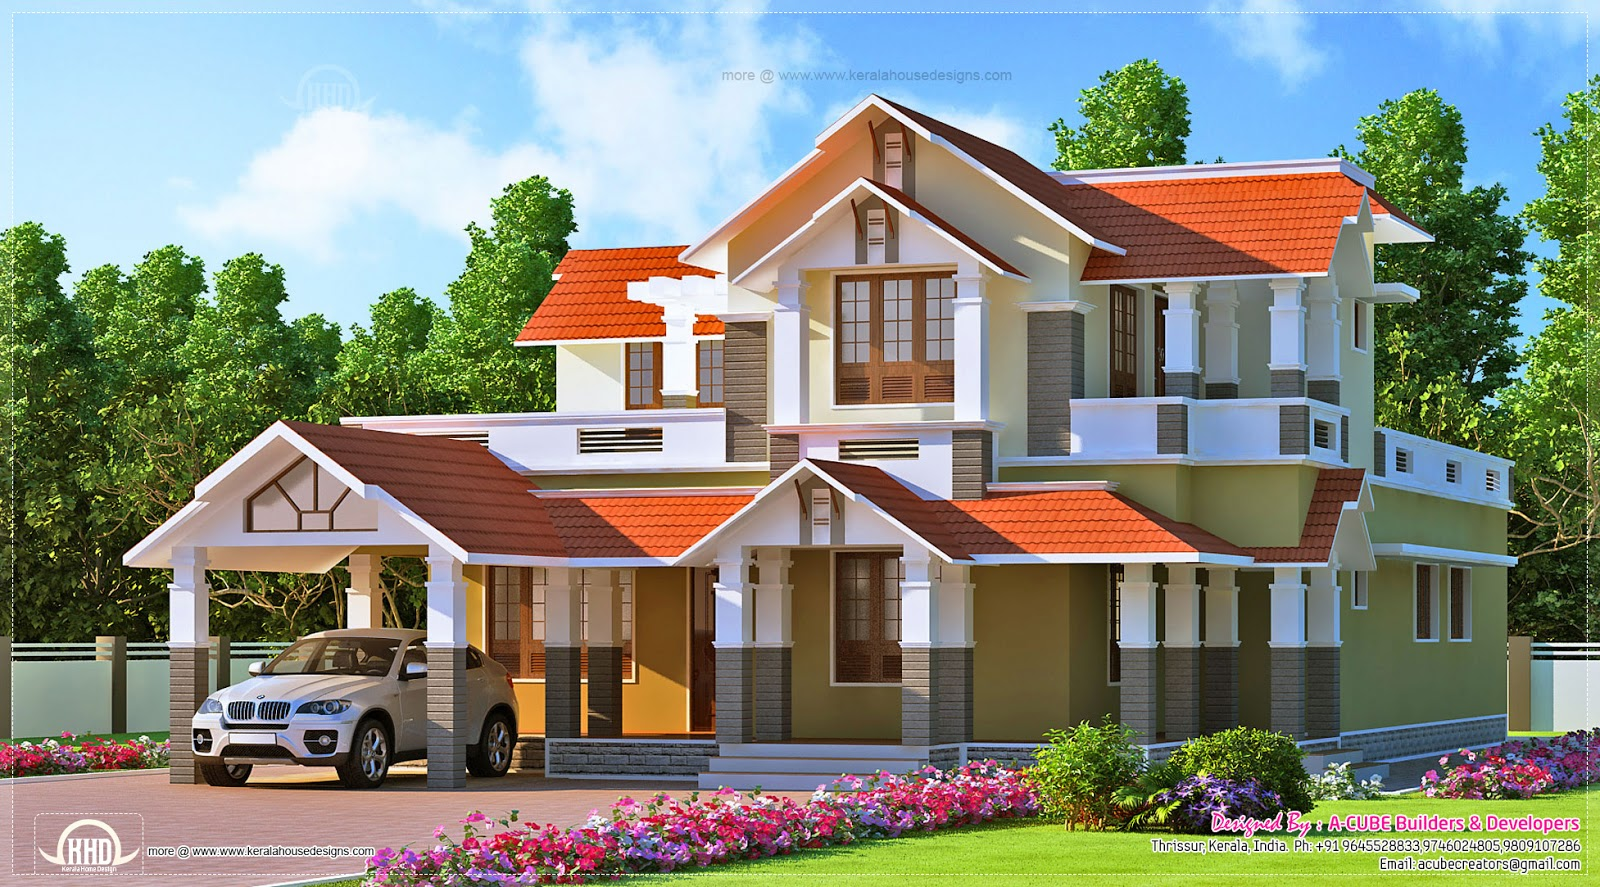 Eco friendly houses kerala style dream home design for Design your dream house